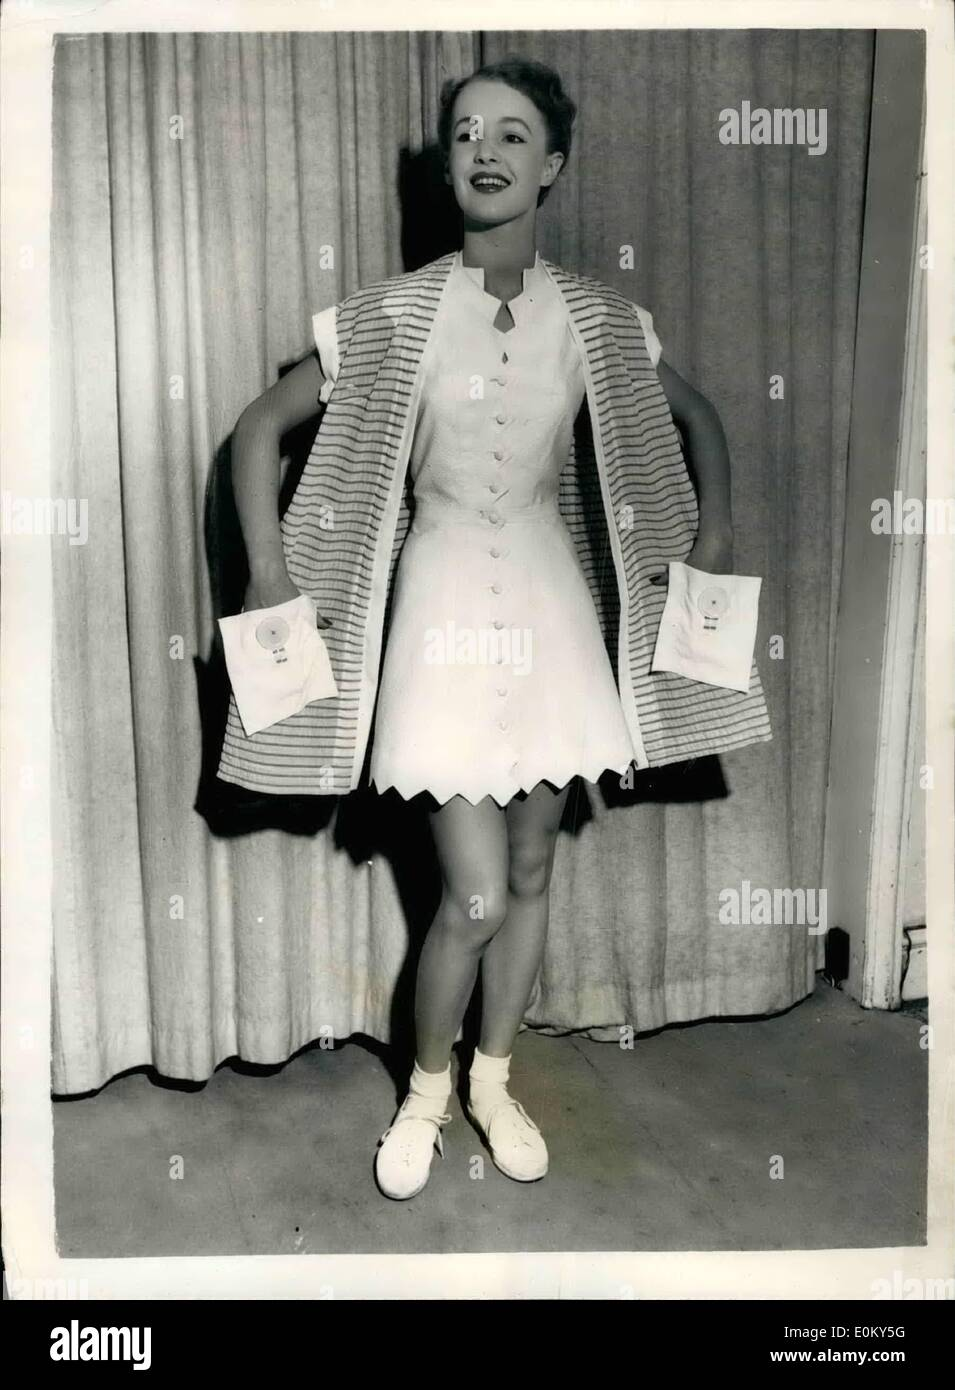 Nov. 11, 1952 - Tennis fashions for ''Little Mo''. To be flown to Australia.: Half a dozen new outfits for tennis star, Maureen - Stock Image